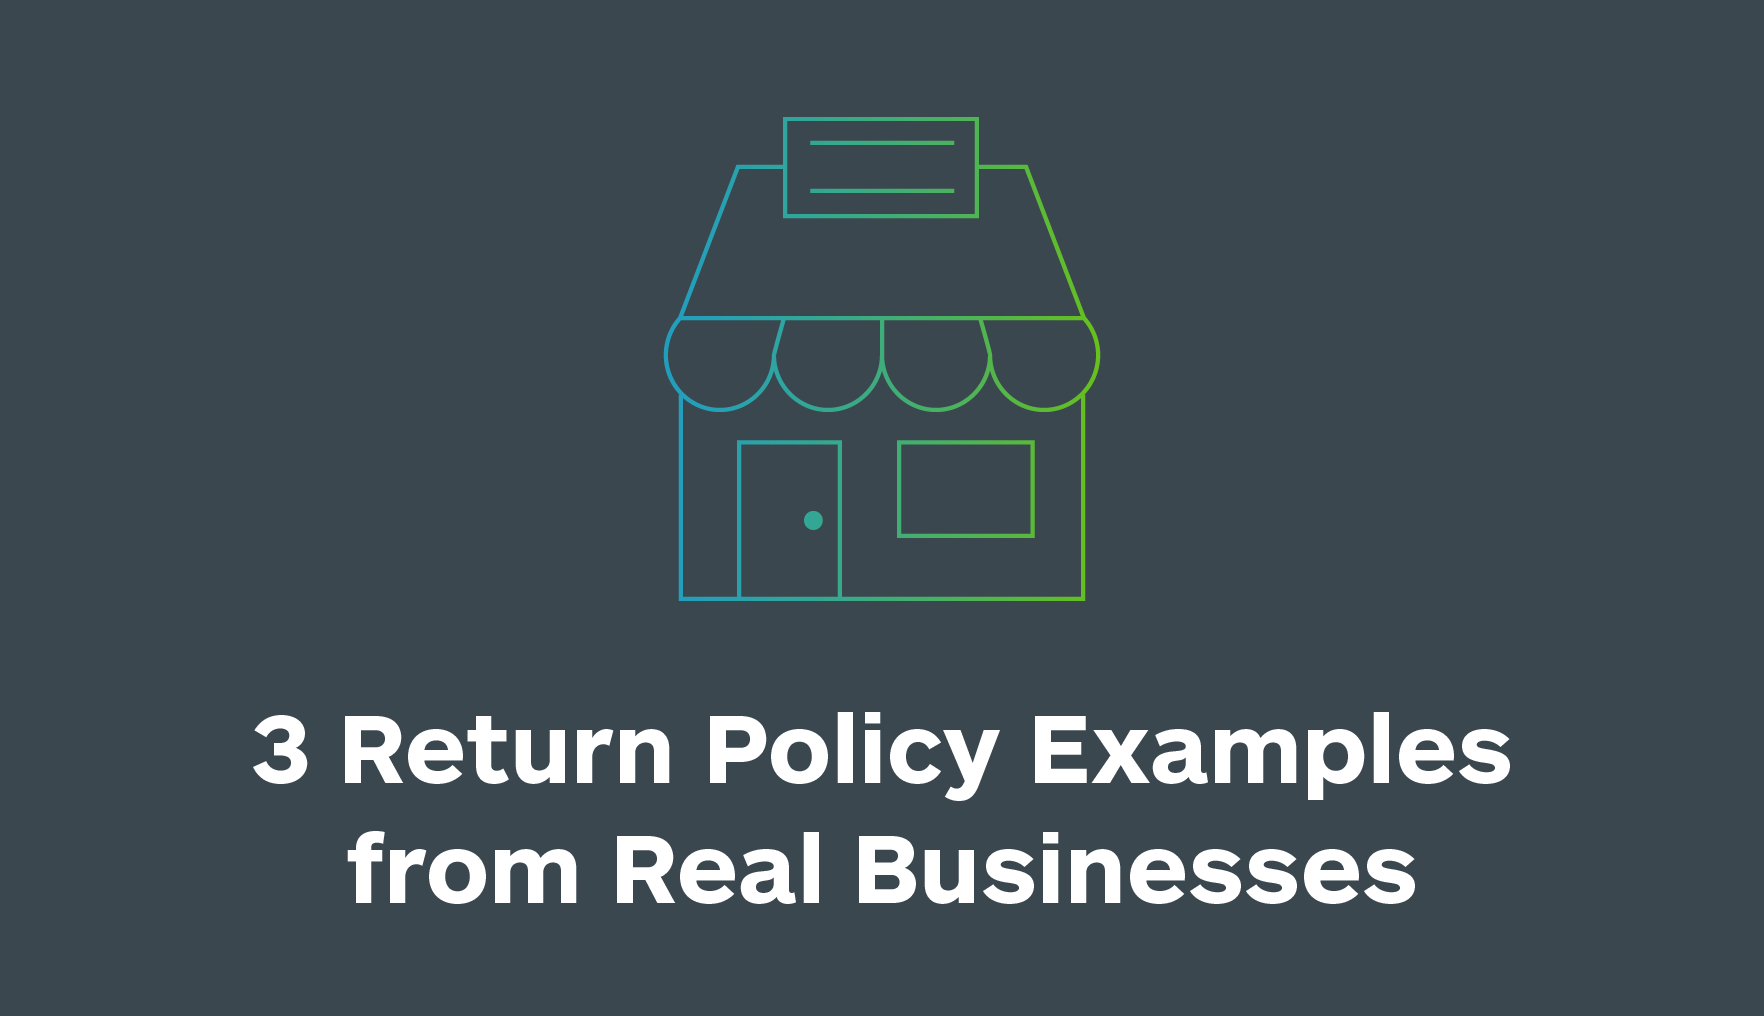 3 Return Policy Examples from Real Businesses